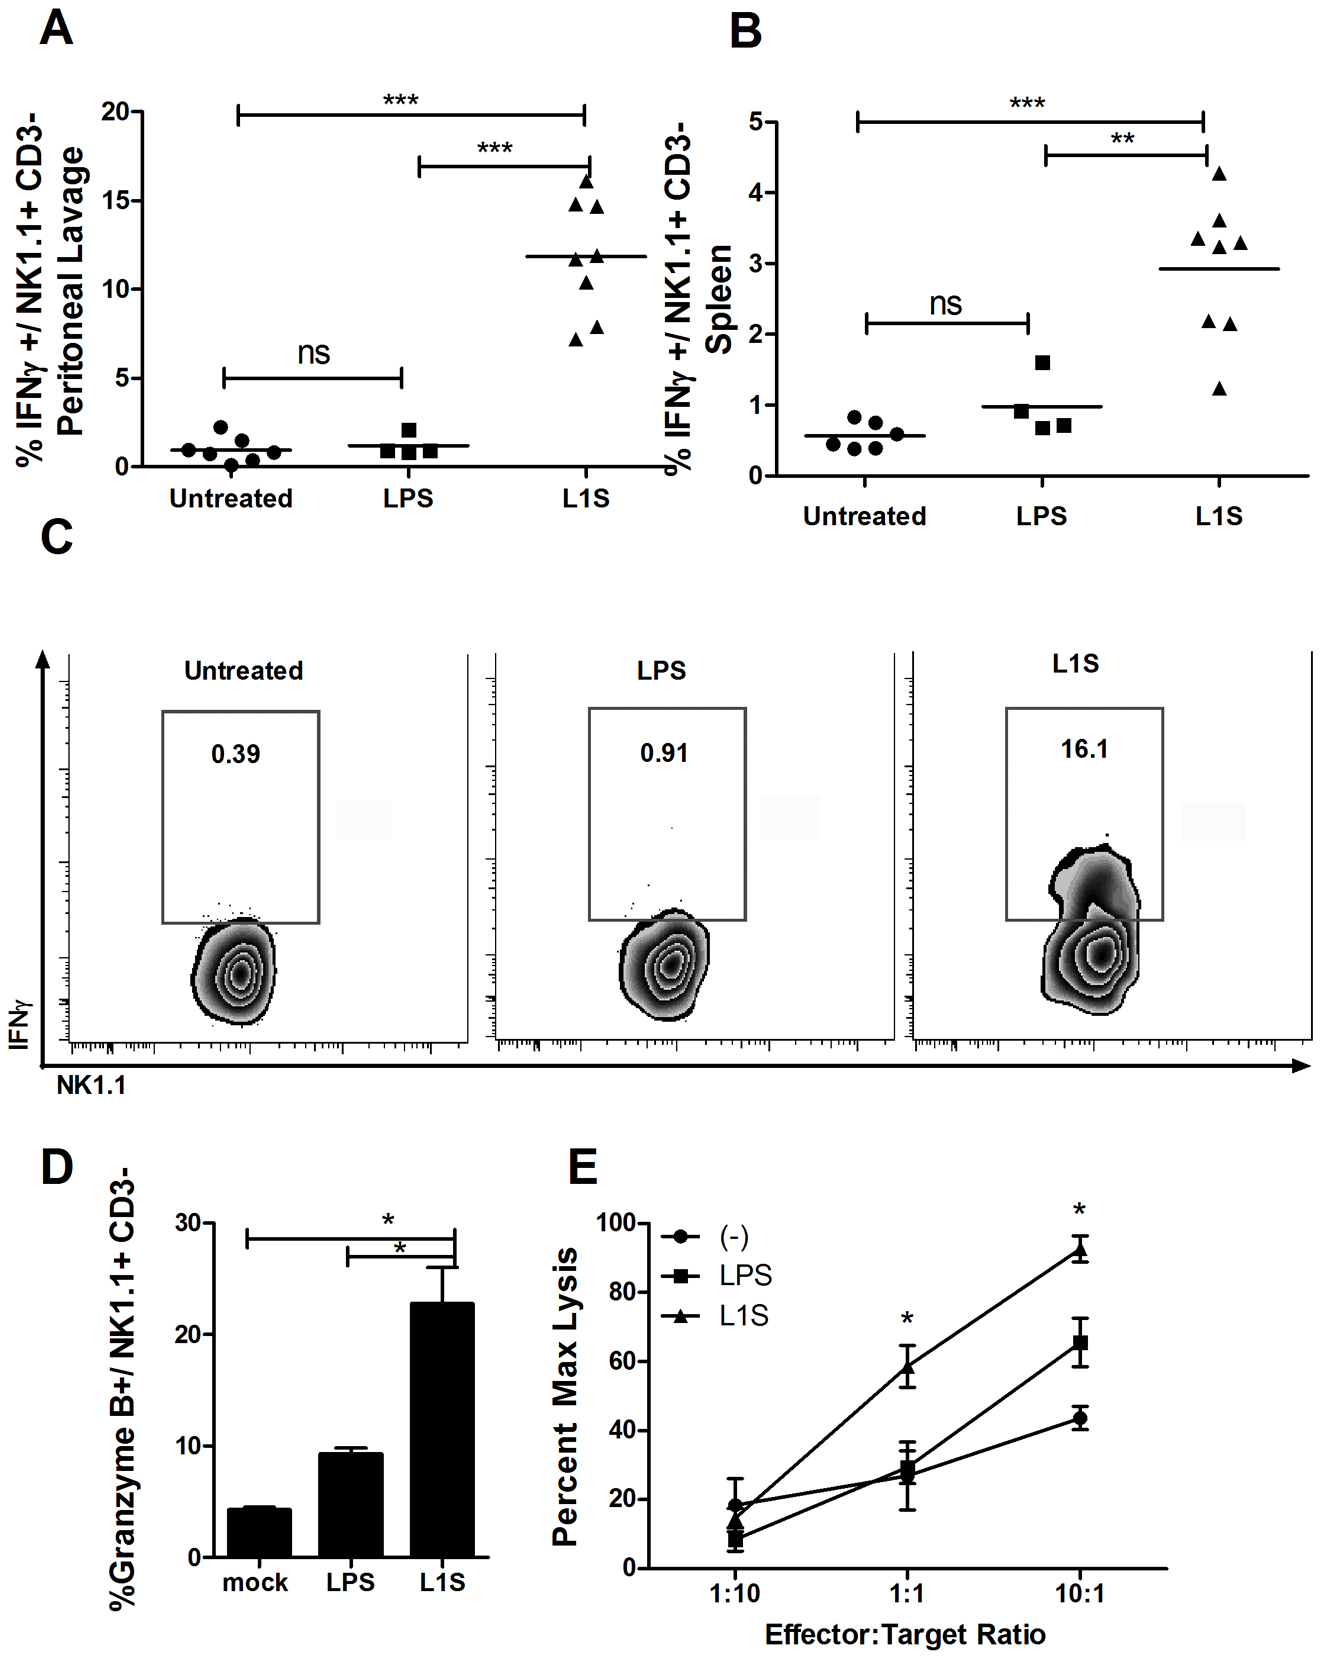 L1S activates NK cells <i>in vivo</i> to secrete IFNγ and increase cytotoxicity.